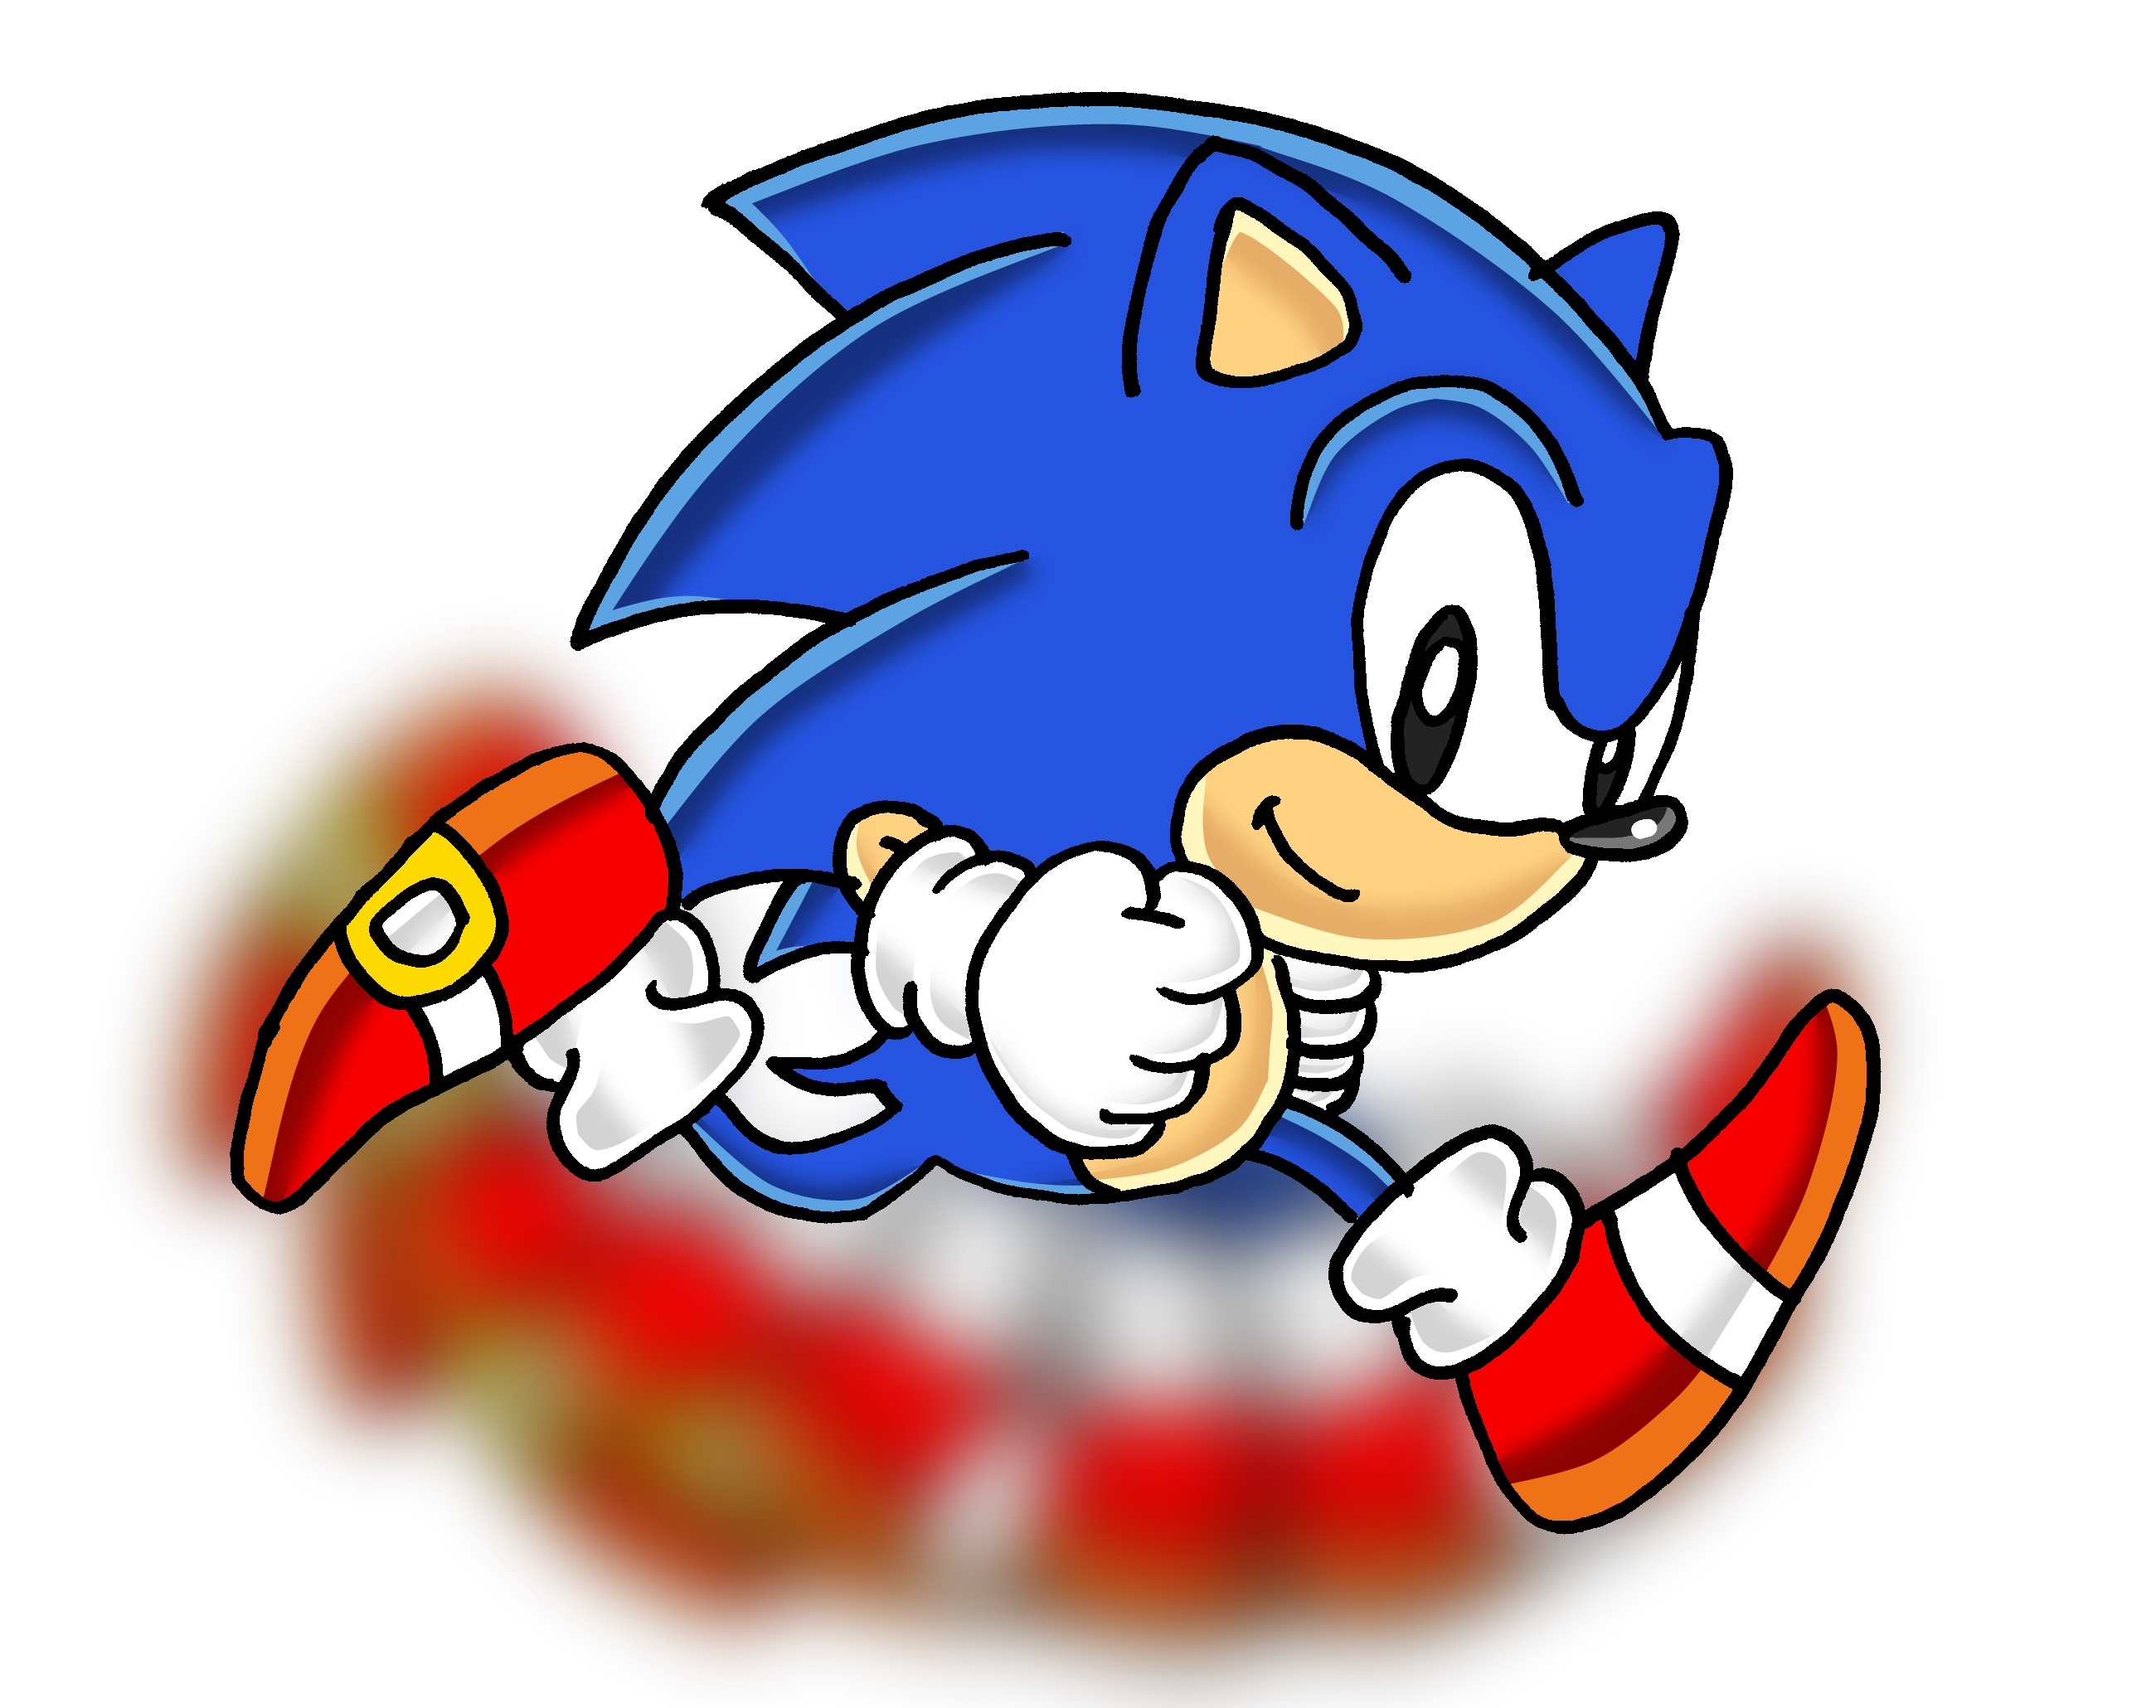 Sonic running png. Image classic news network